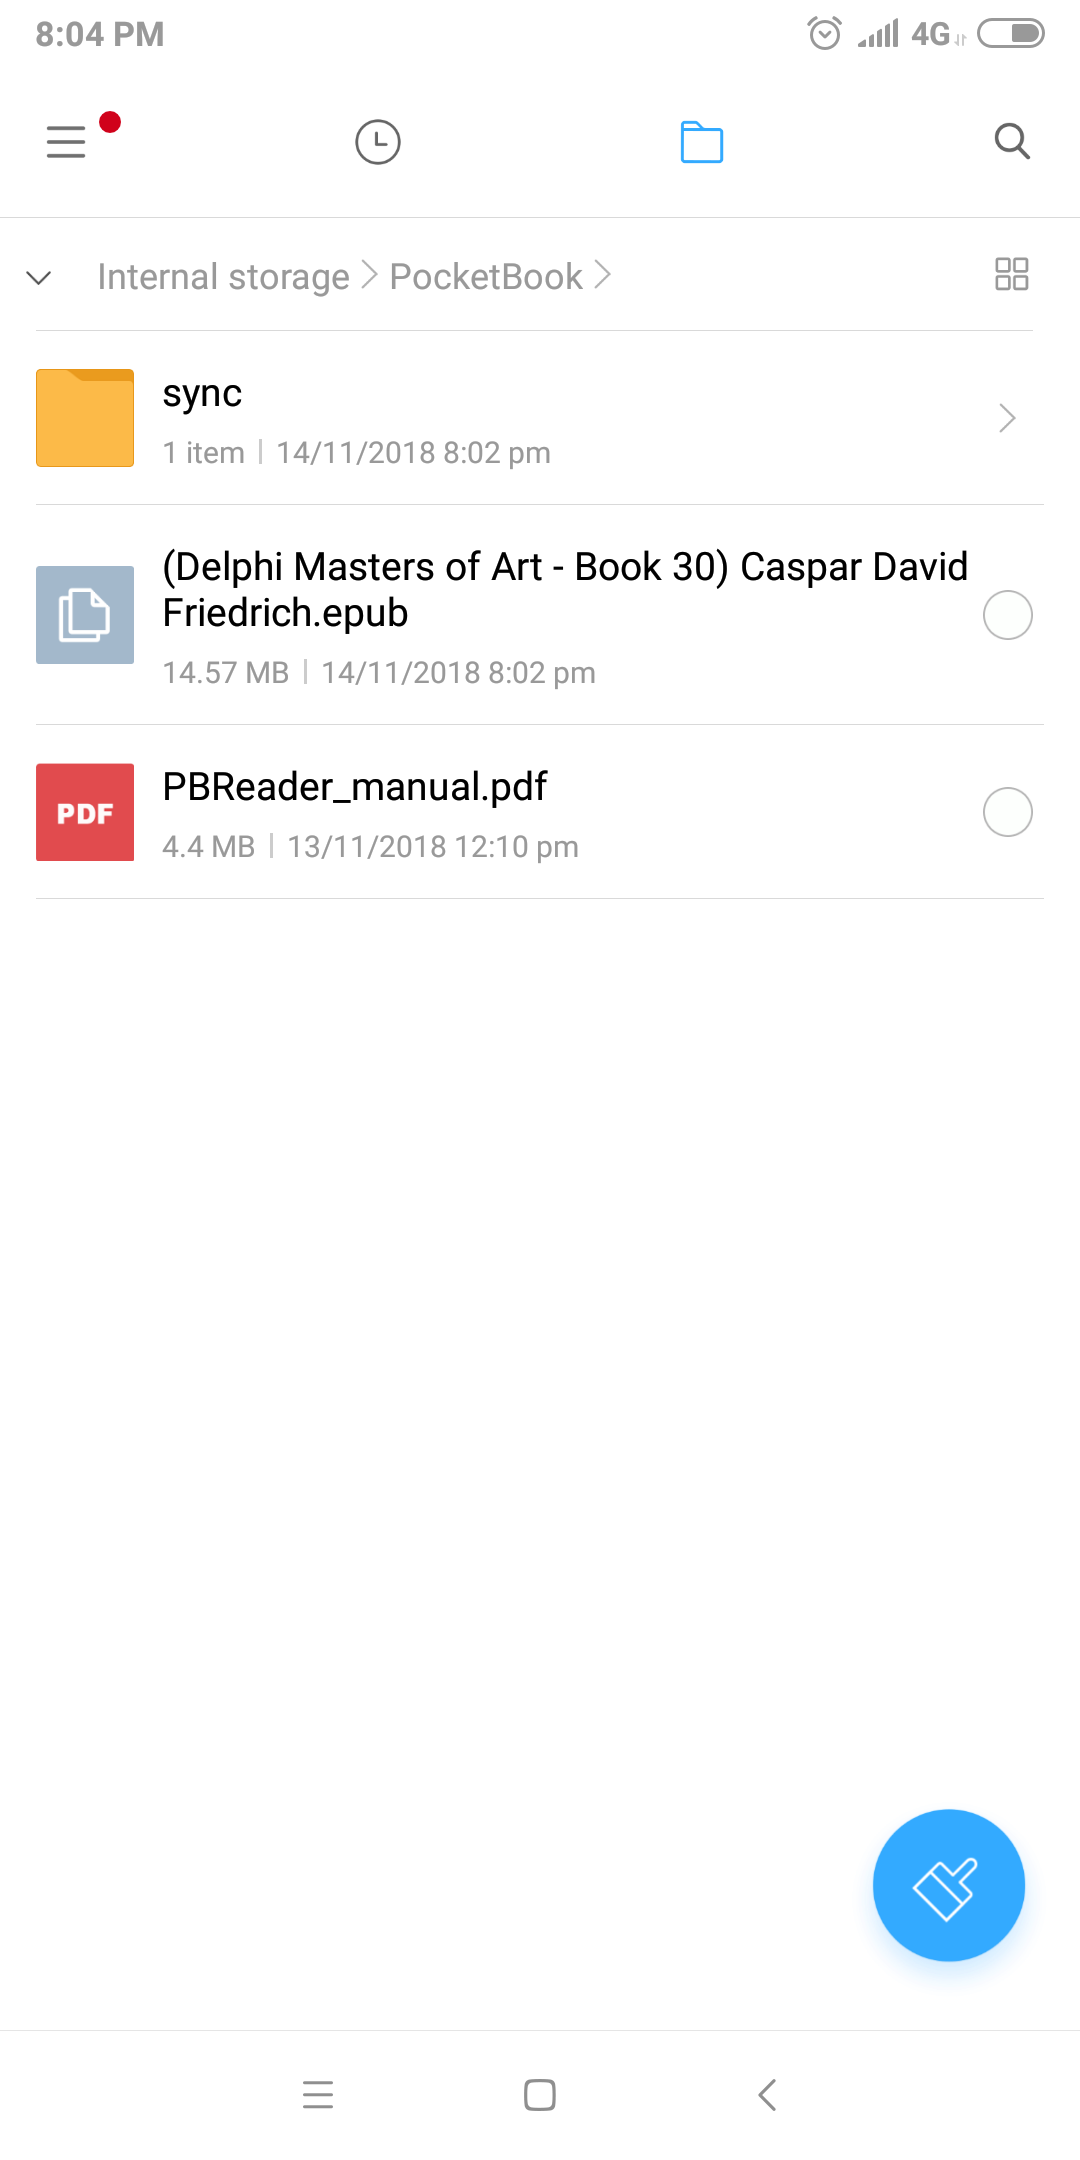 Read pdf and epub directly from SD card without importing